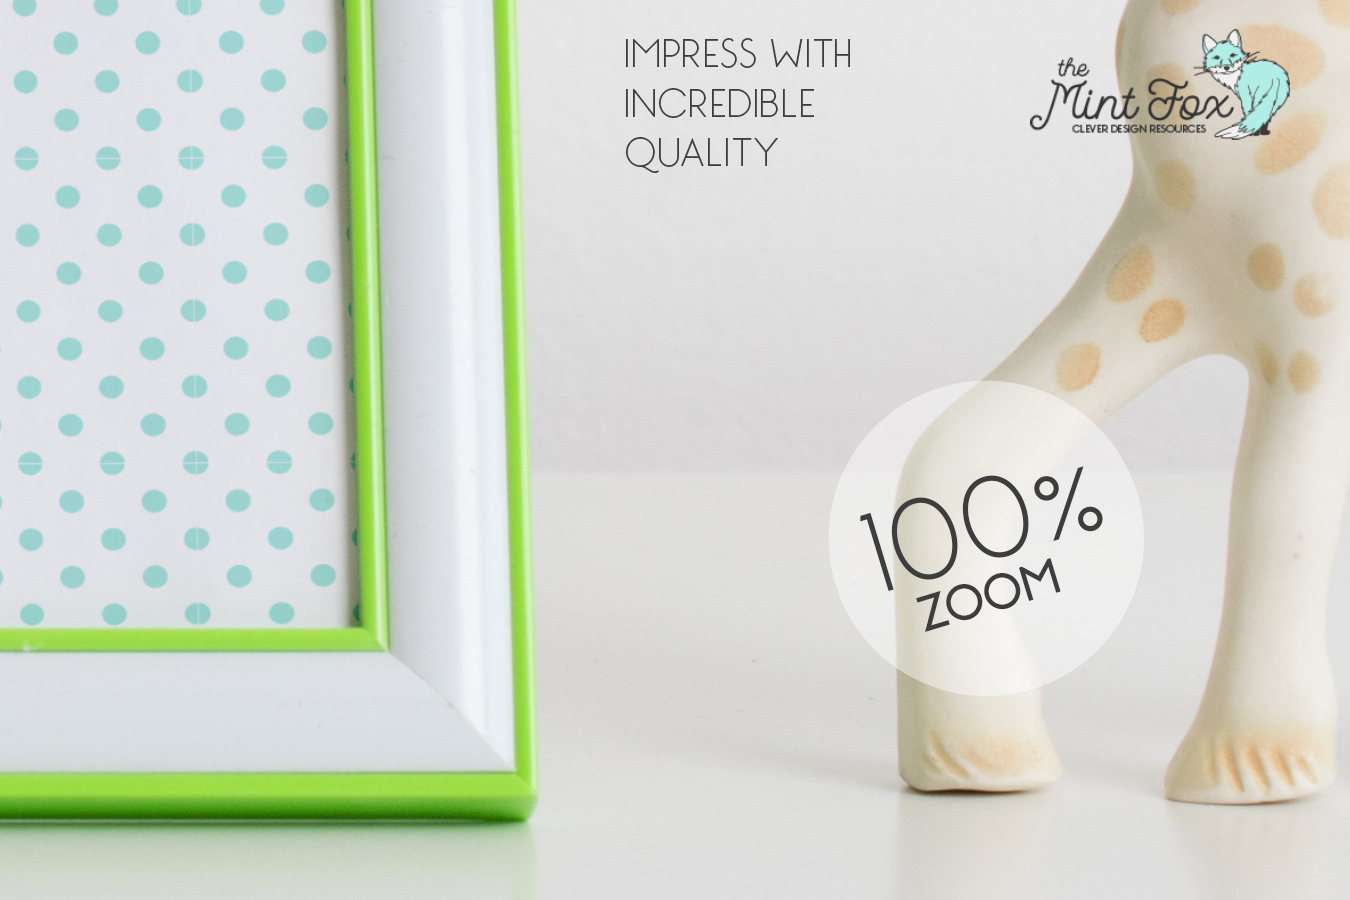 Children Photo Frame Mockup with Giraffe example image 2